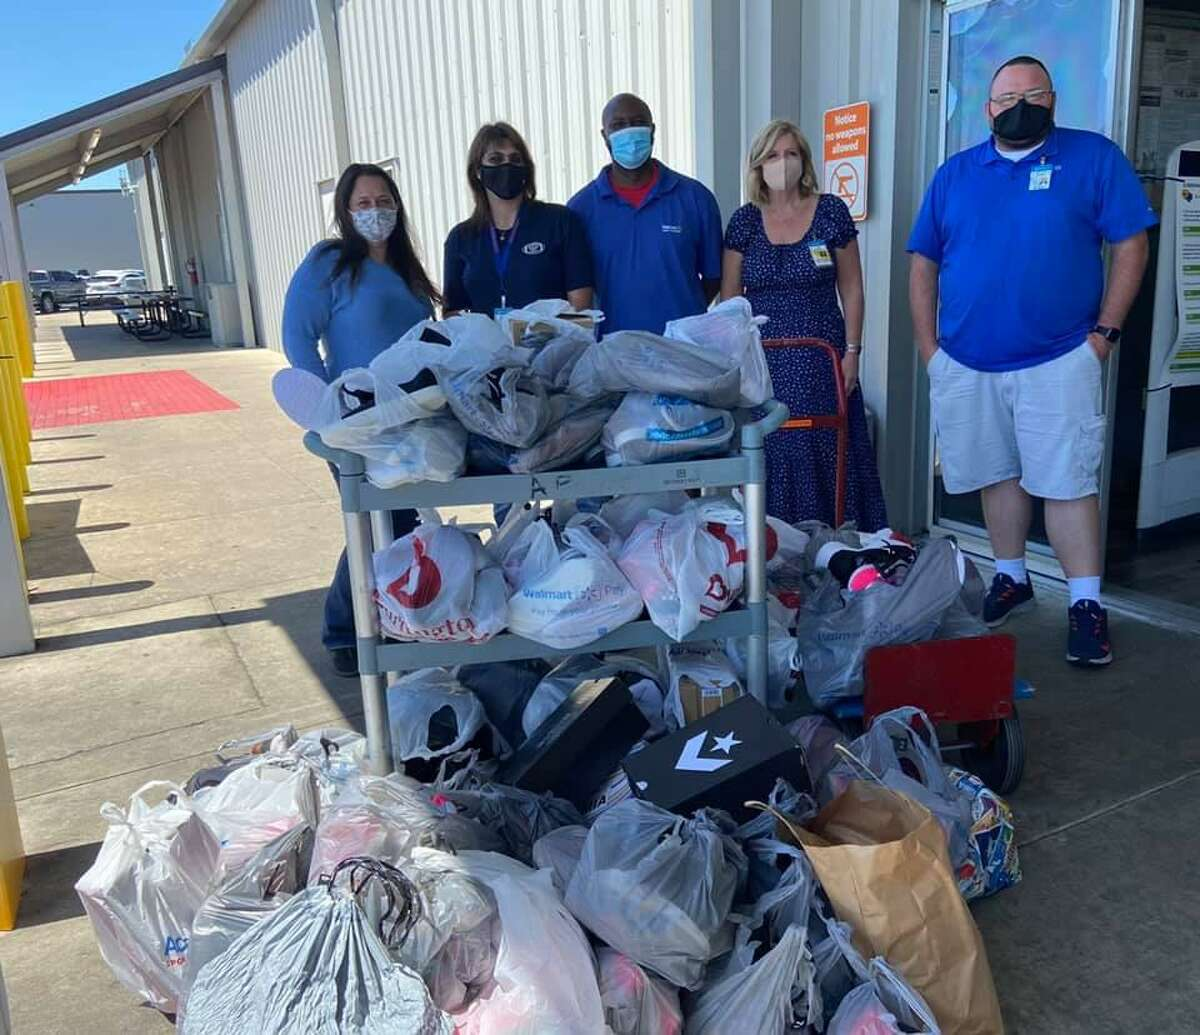 The Kicks for Kids Shoe Drive with Your Total Foot Care Specialist and Compassion Katy collected nearly 1,200 pairs of shoes for Katy Independent School District Title I elementary schools to give to students in need during the 2021-22 school year.